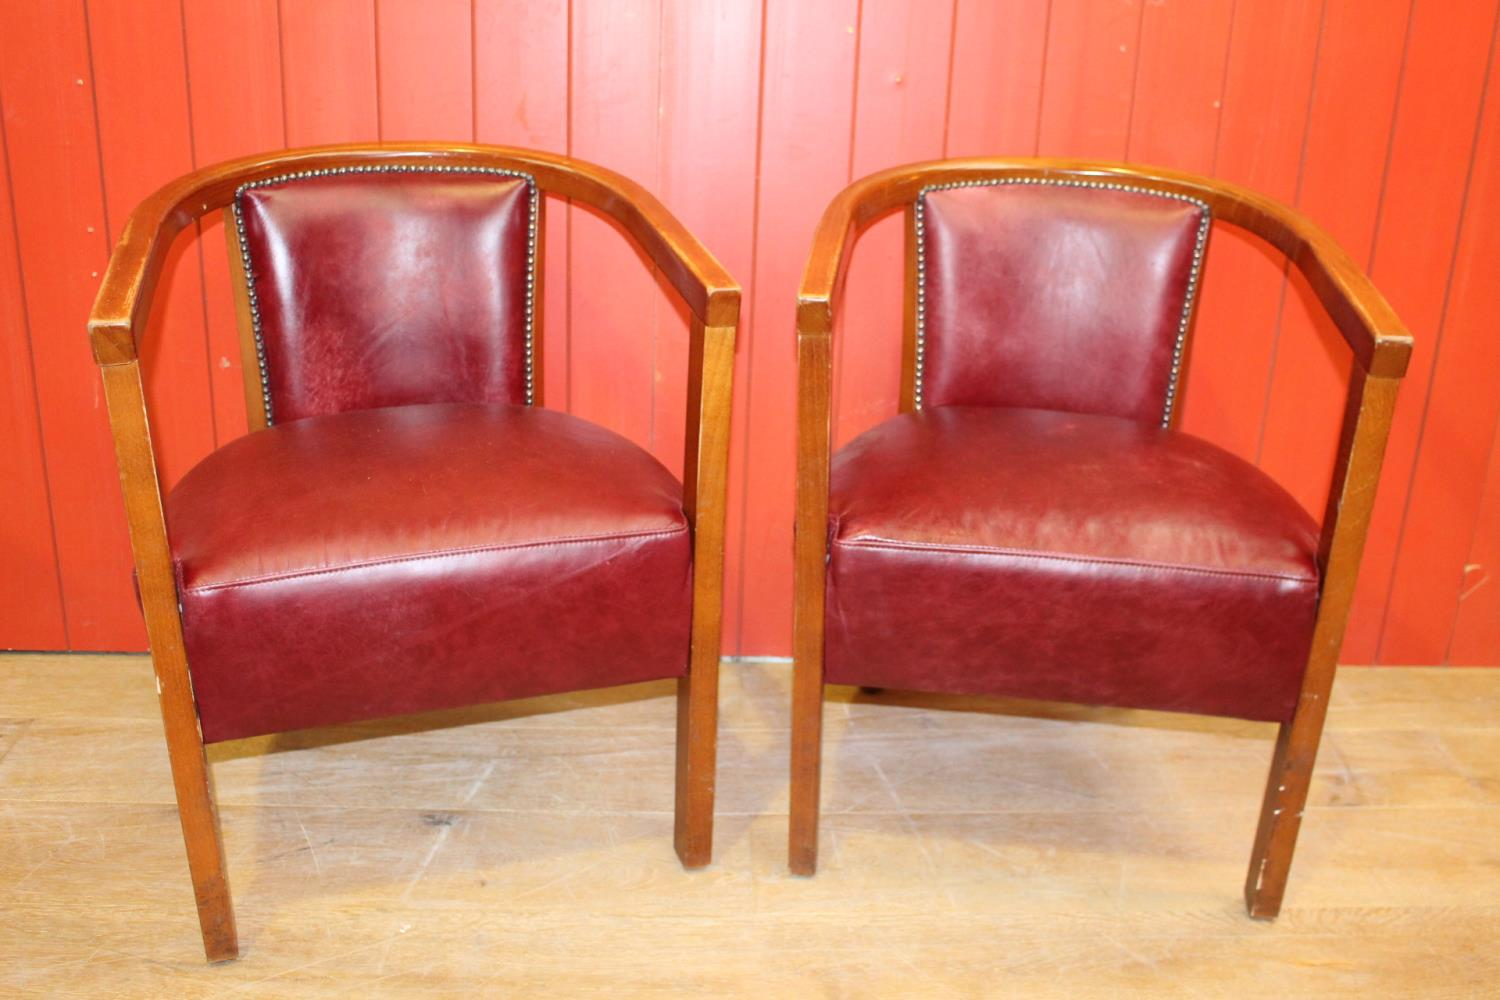 Pair of leather tub chairs.